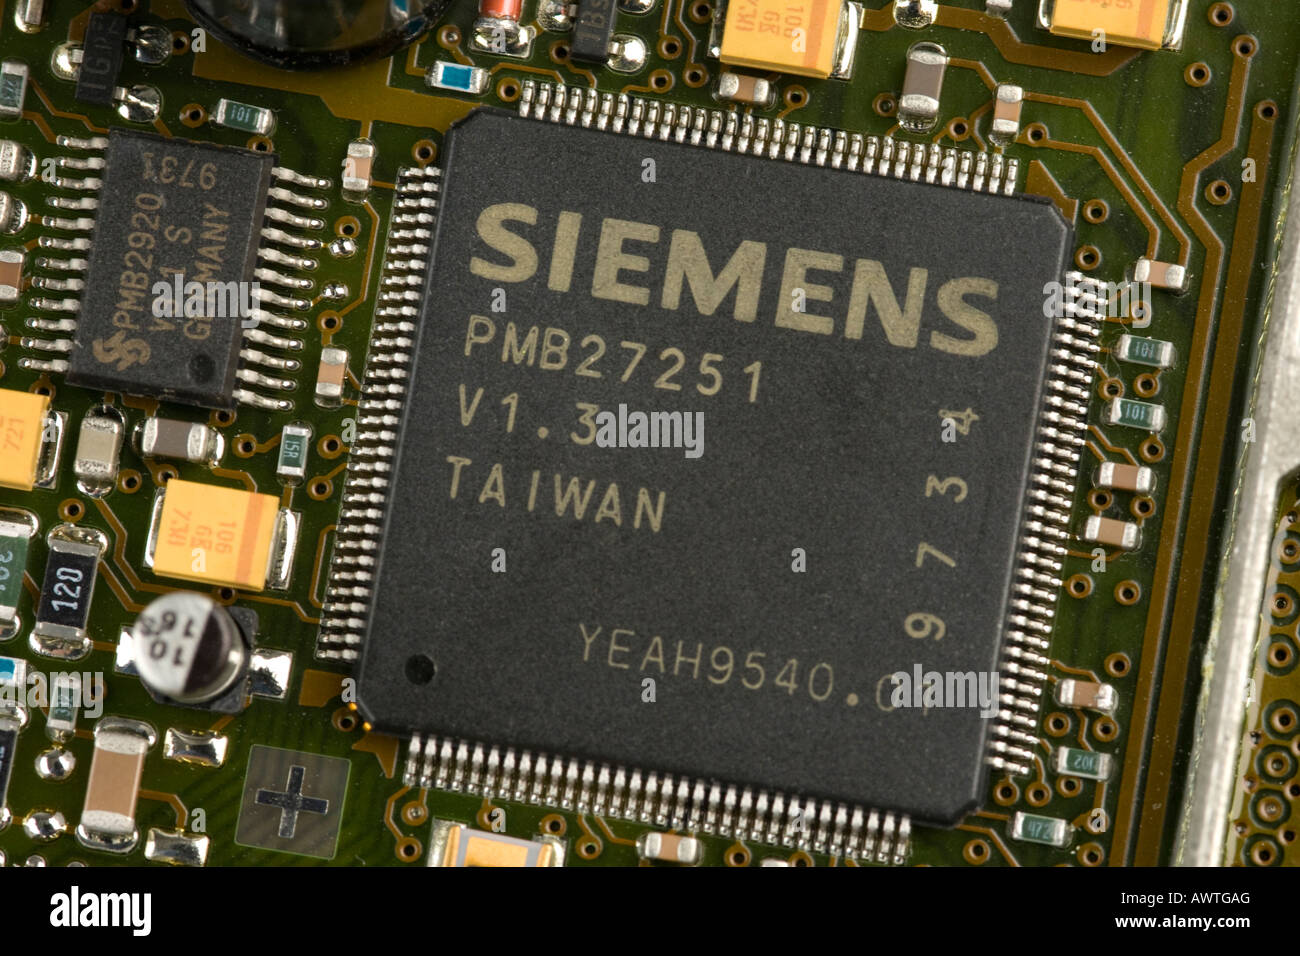 Integrated Circuit Stock Photos Images The History Of Circuits And Microchips Thumbnail Siemens Microchip On Board Image